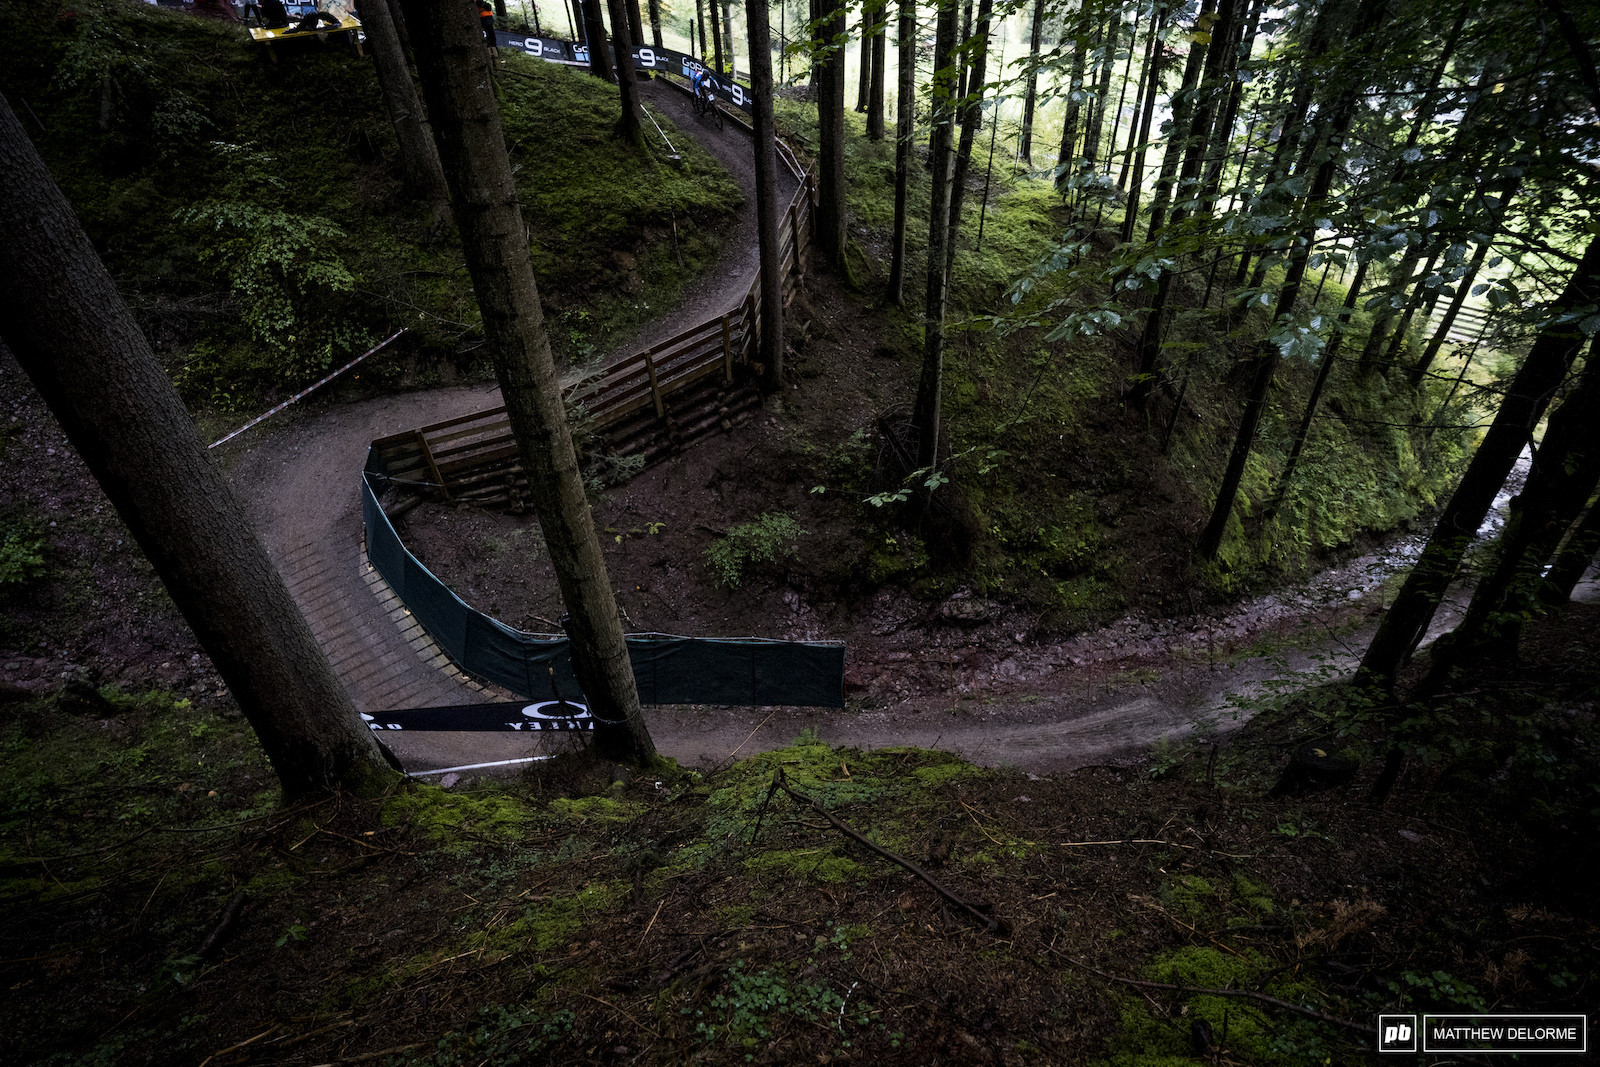 A bit of smooth woodland bike park to mix it up.